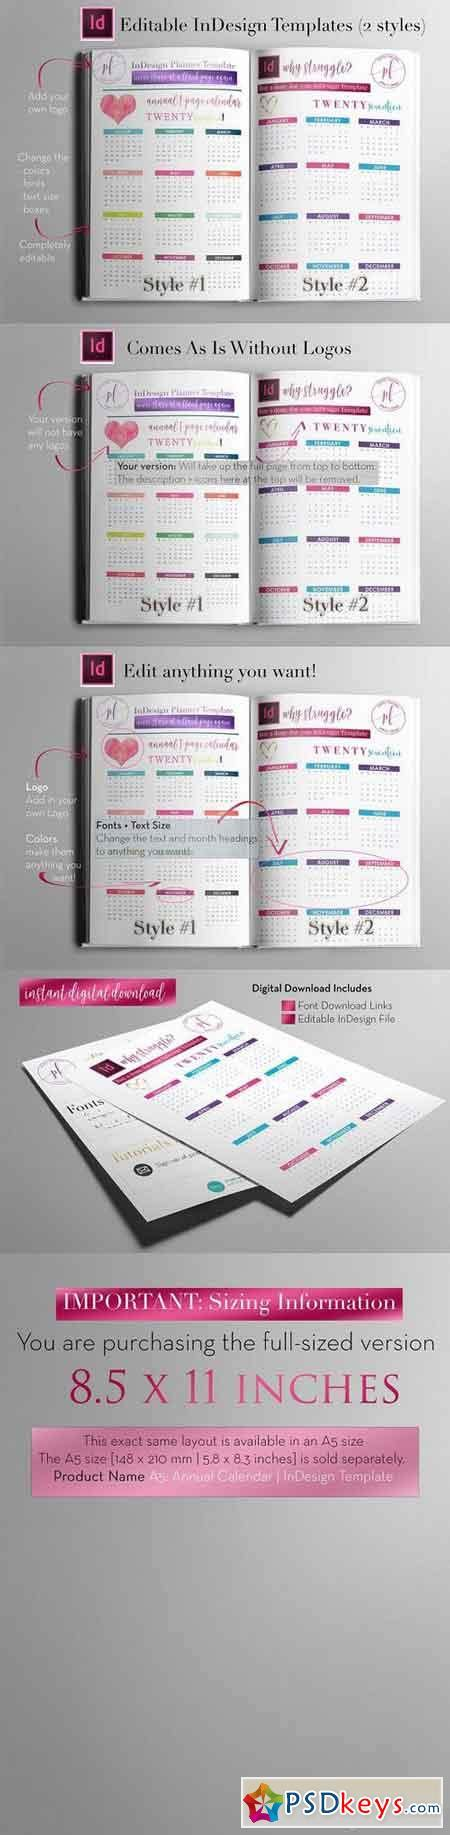 Annual Calendar Indesign Template 1113017 187 Free Download Photoshop Vector Stock Image Via Indesign Calendar Template